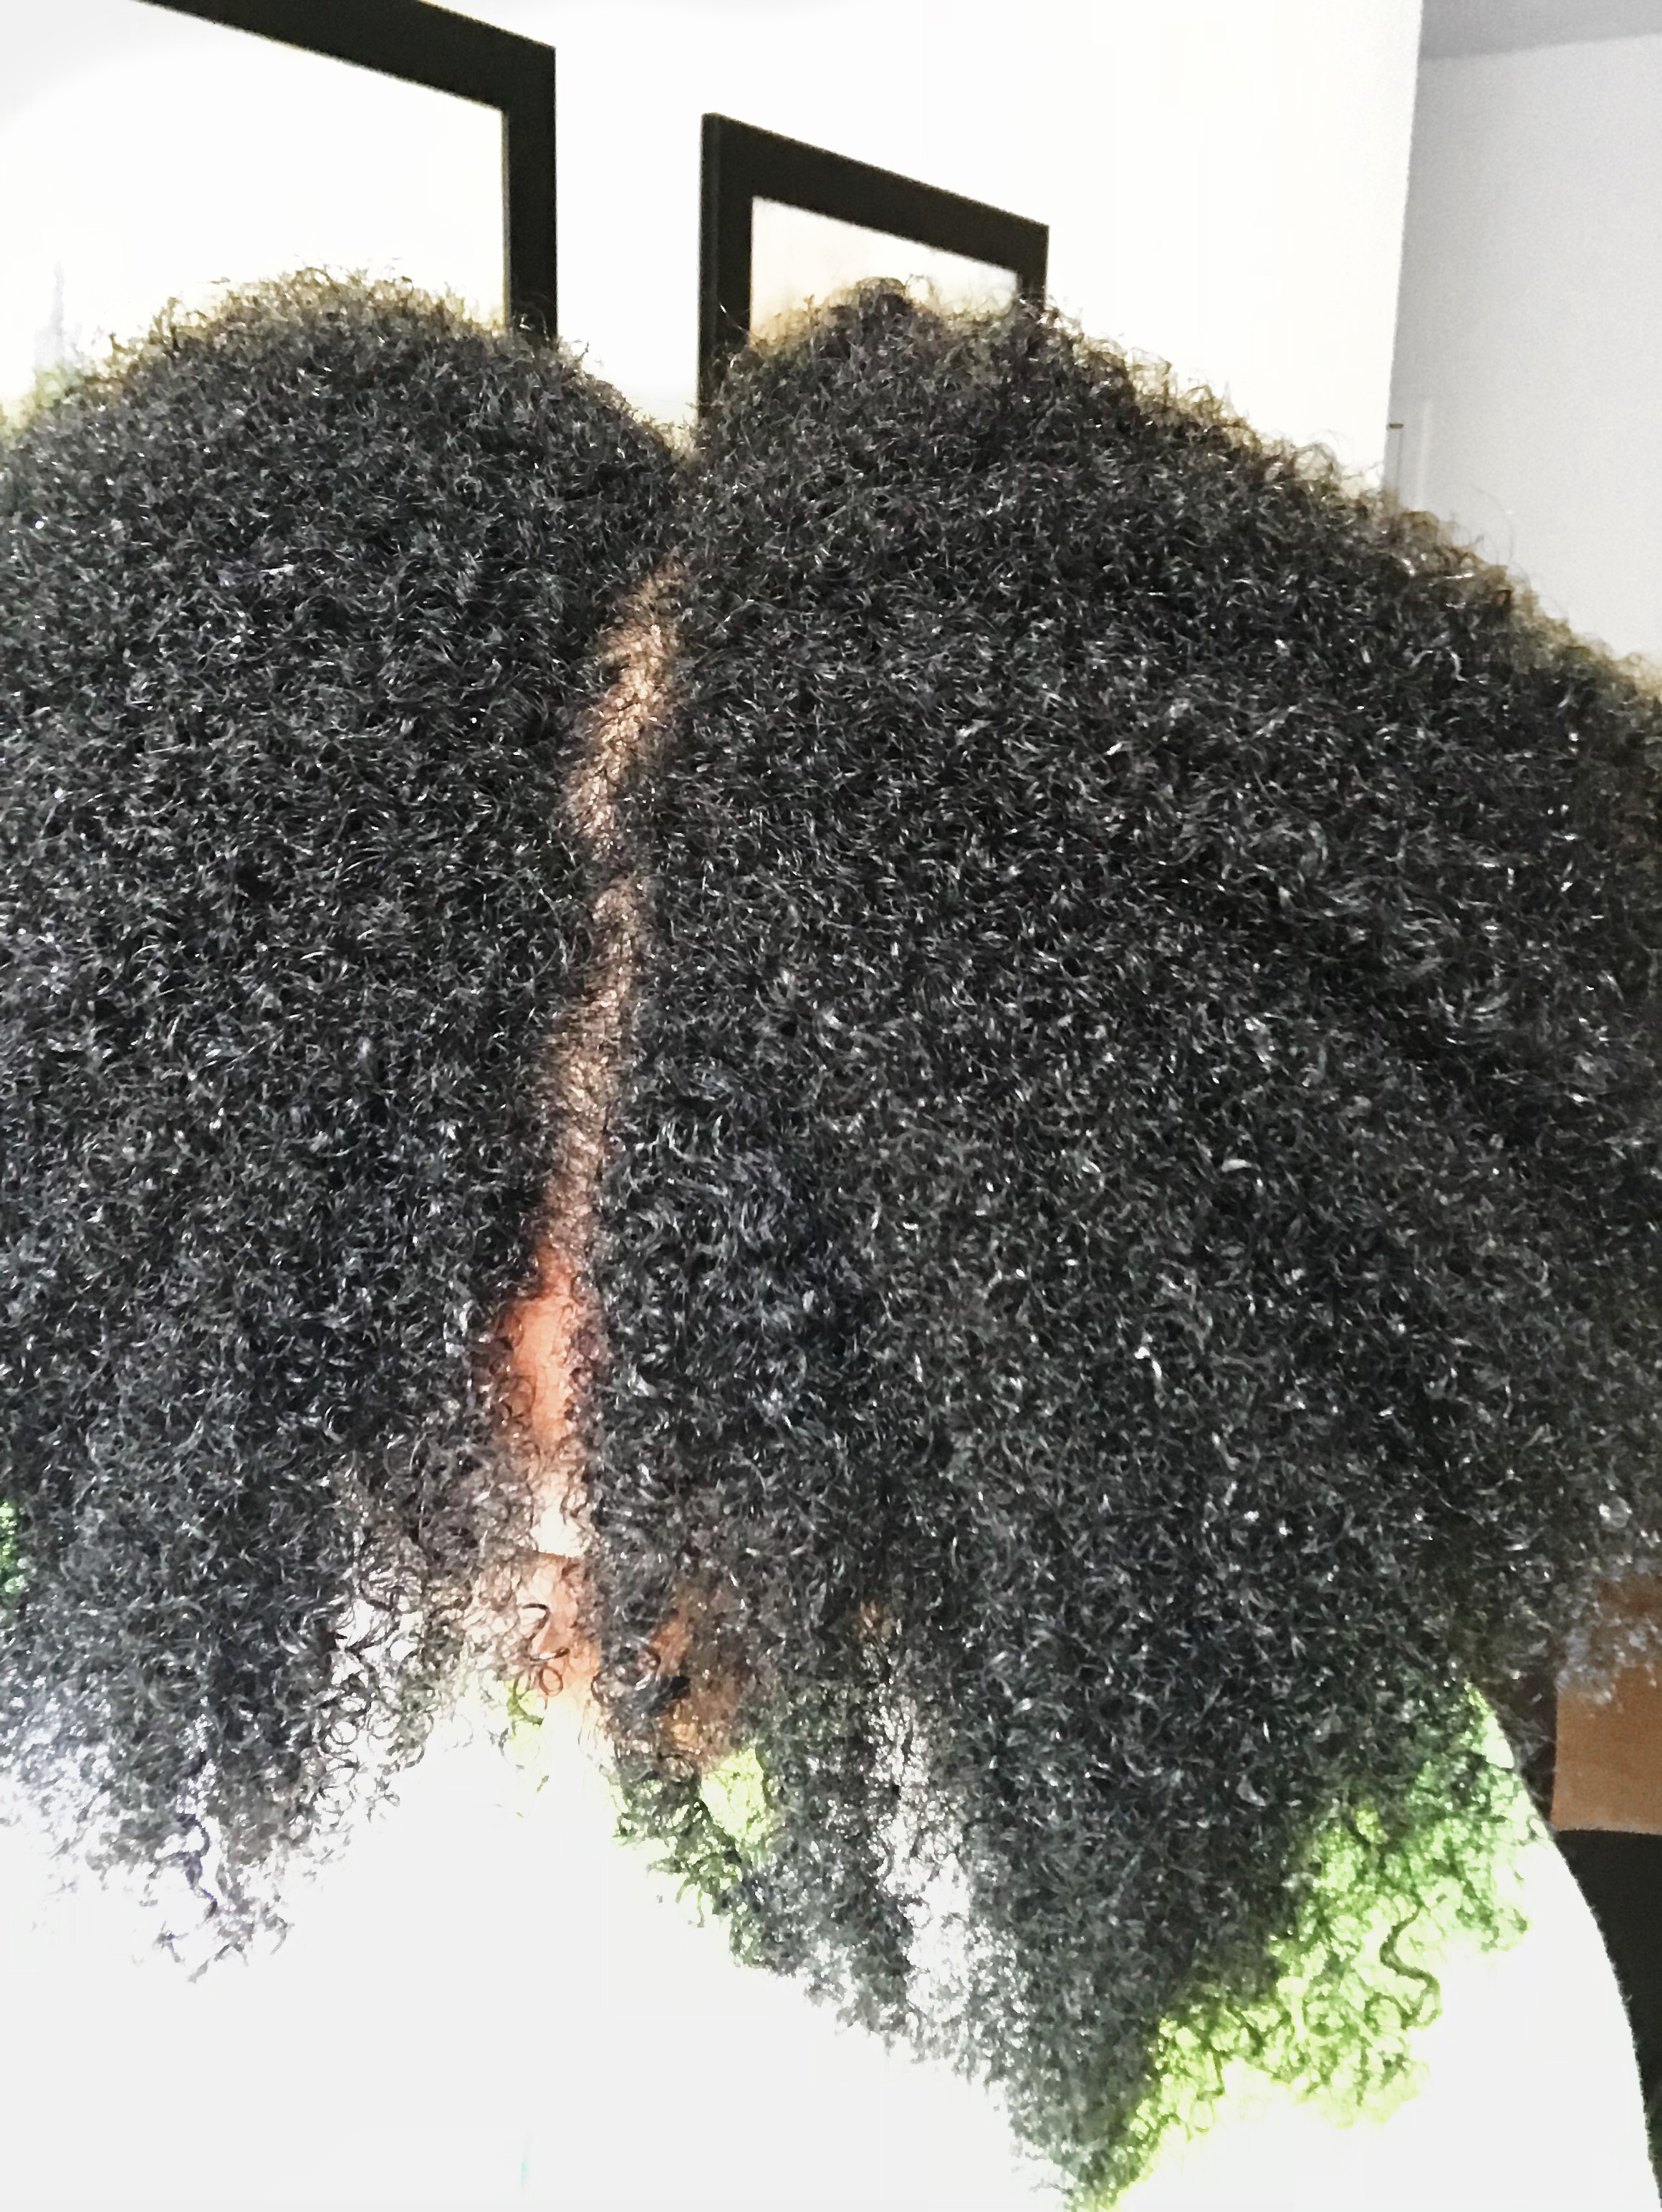 Hair after rinsing the conditioner out